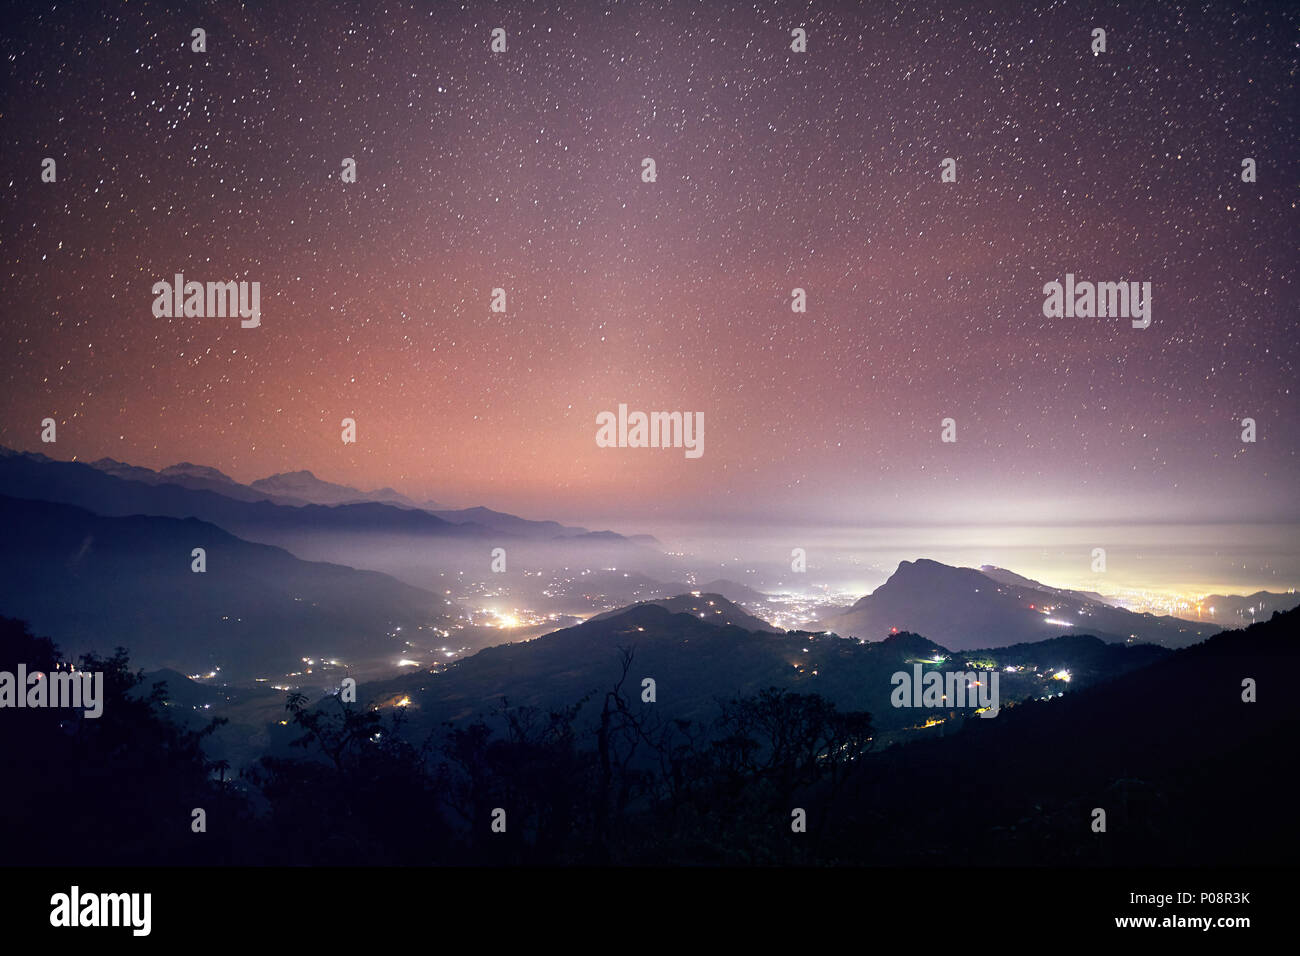 Lights of Pokhara city and villages at night starry sky at mountain range of Annapurna, Nepal - Stock Image